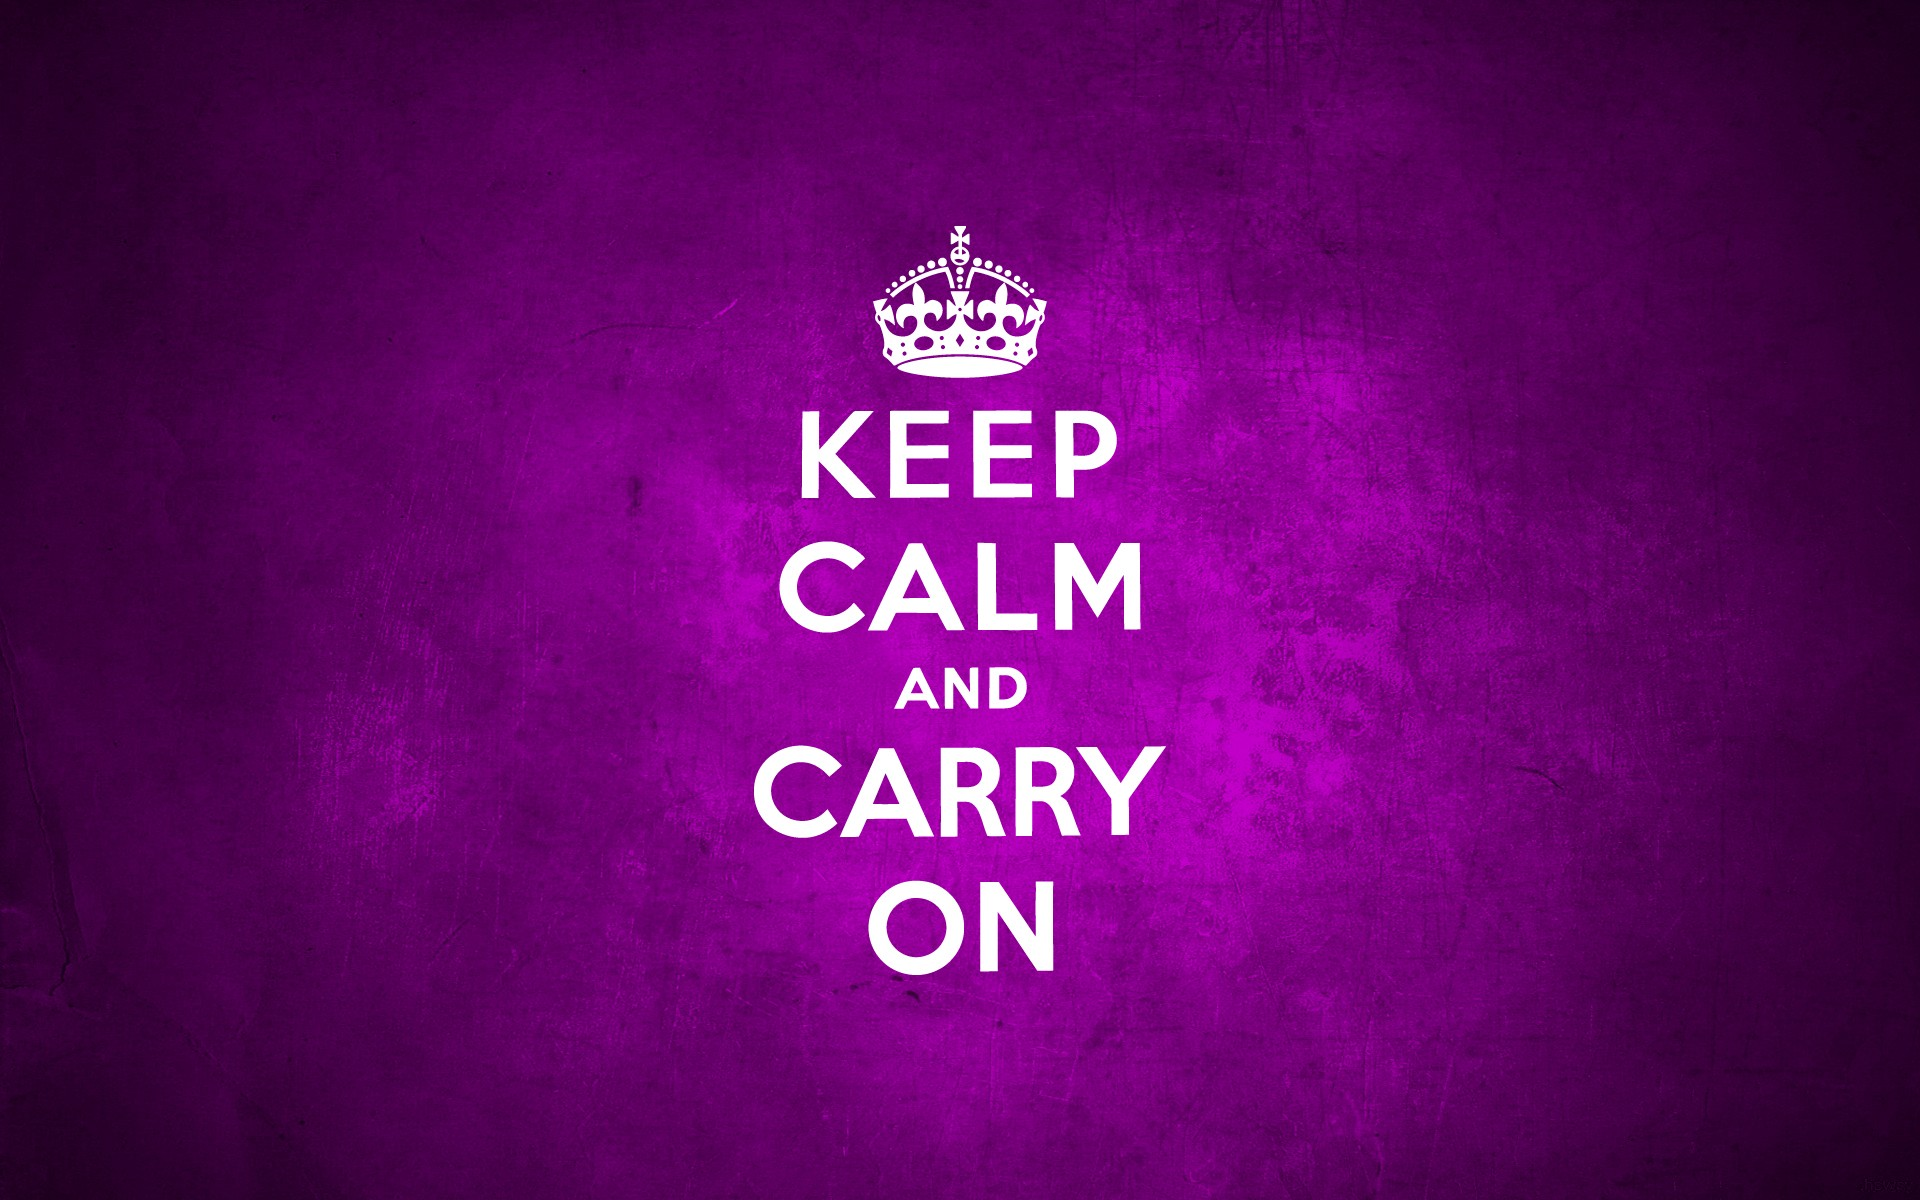 Keep Calm And Carry On Wallpaper Hd 9 Hd Keep Calm And Carry On Wallpapers